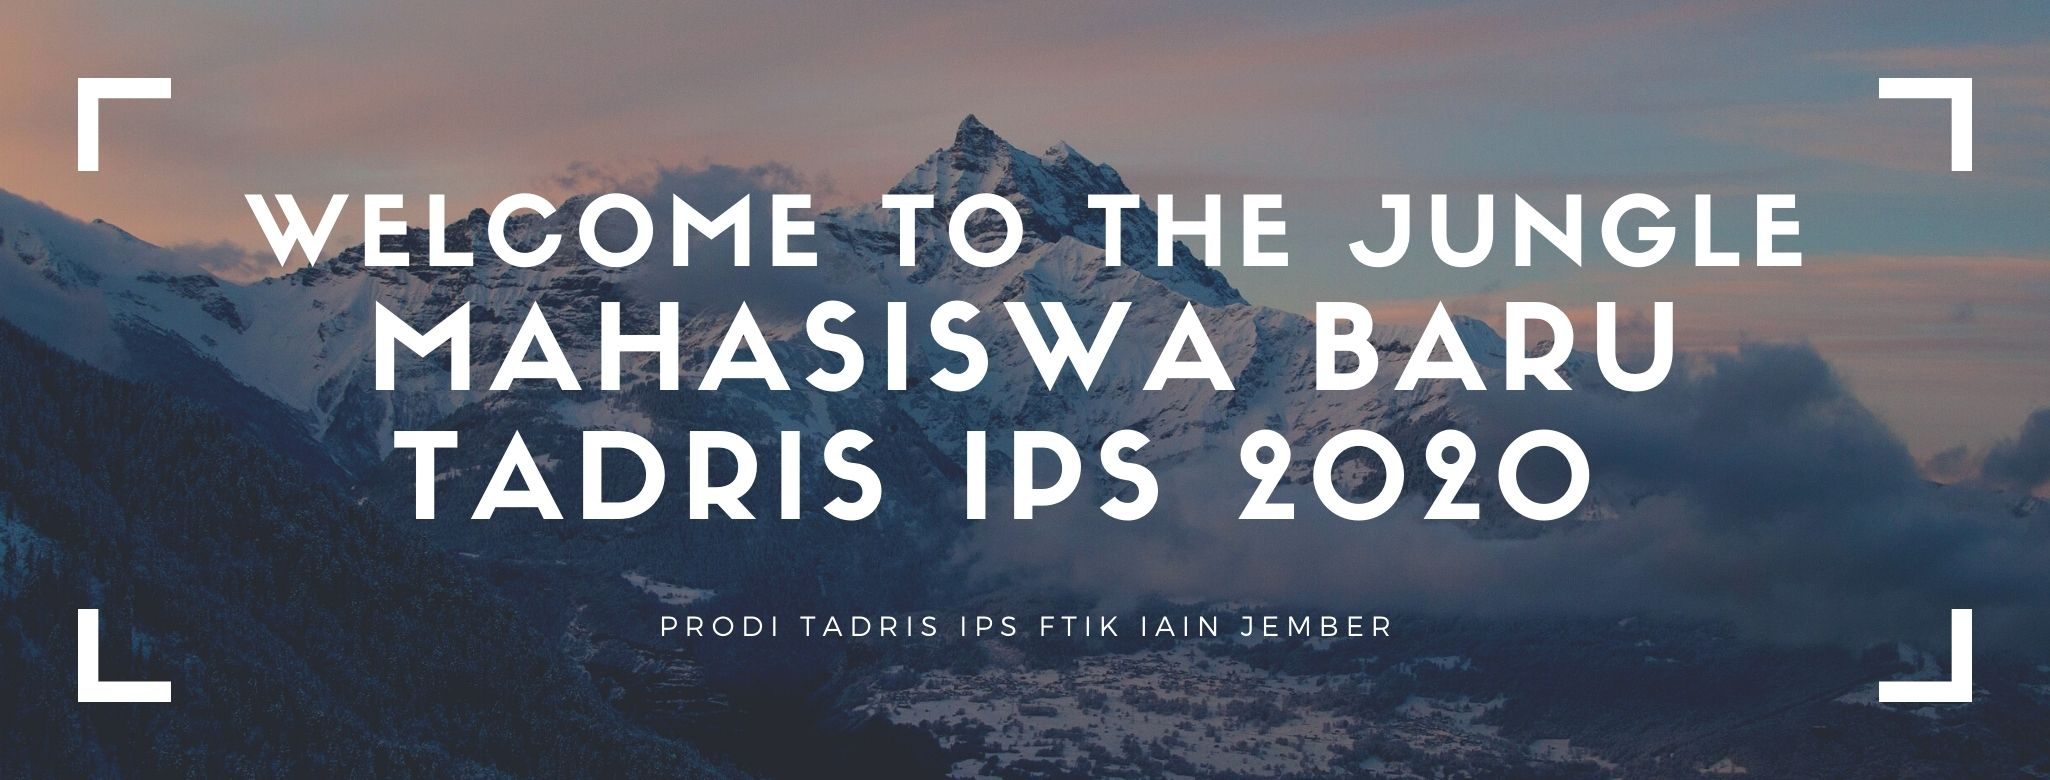 Welcome_to_the_Jungle_Mahasiswa_Baru_Tadris_IPS_2020_(1).jpg